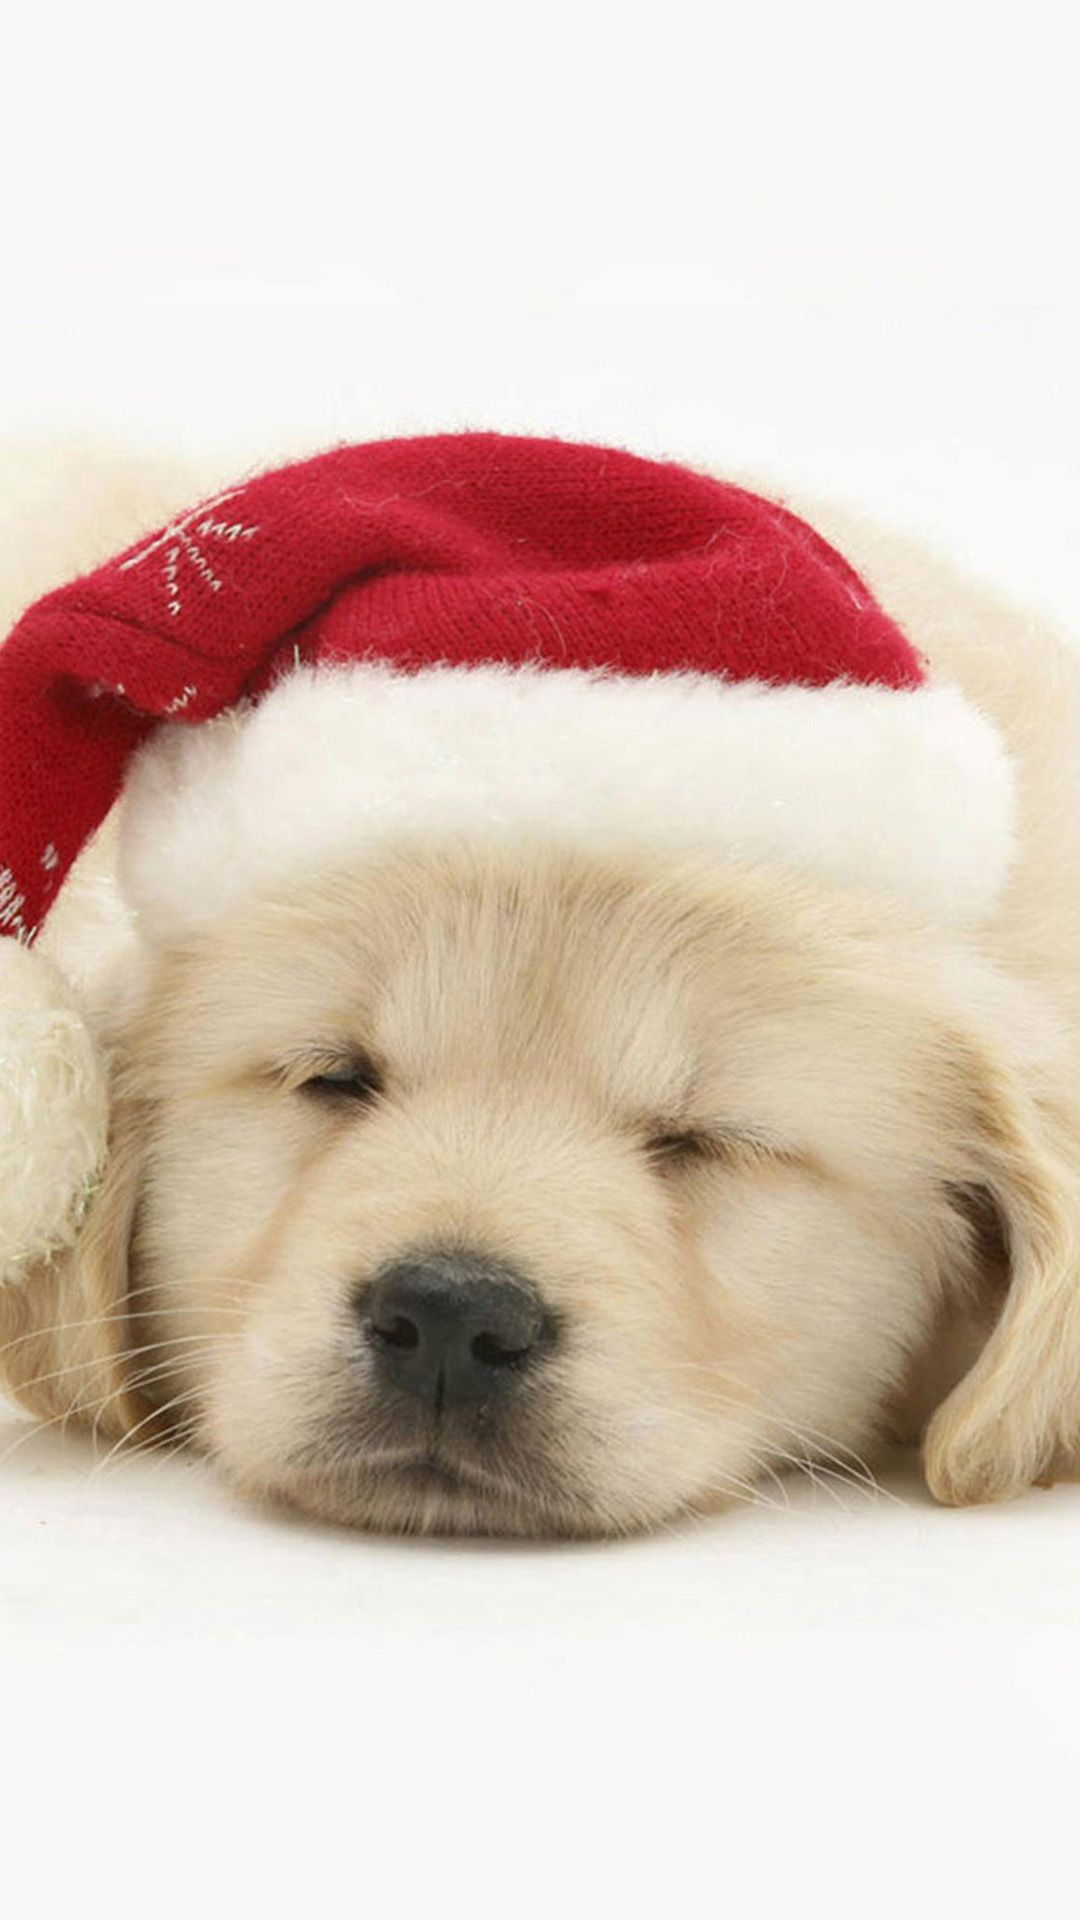 Cute Puppy In Christmas Hat iPhone 6 wallpaper Christmas